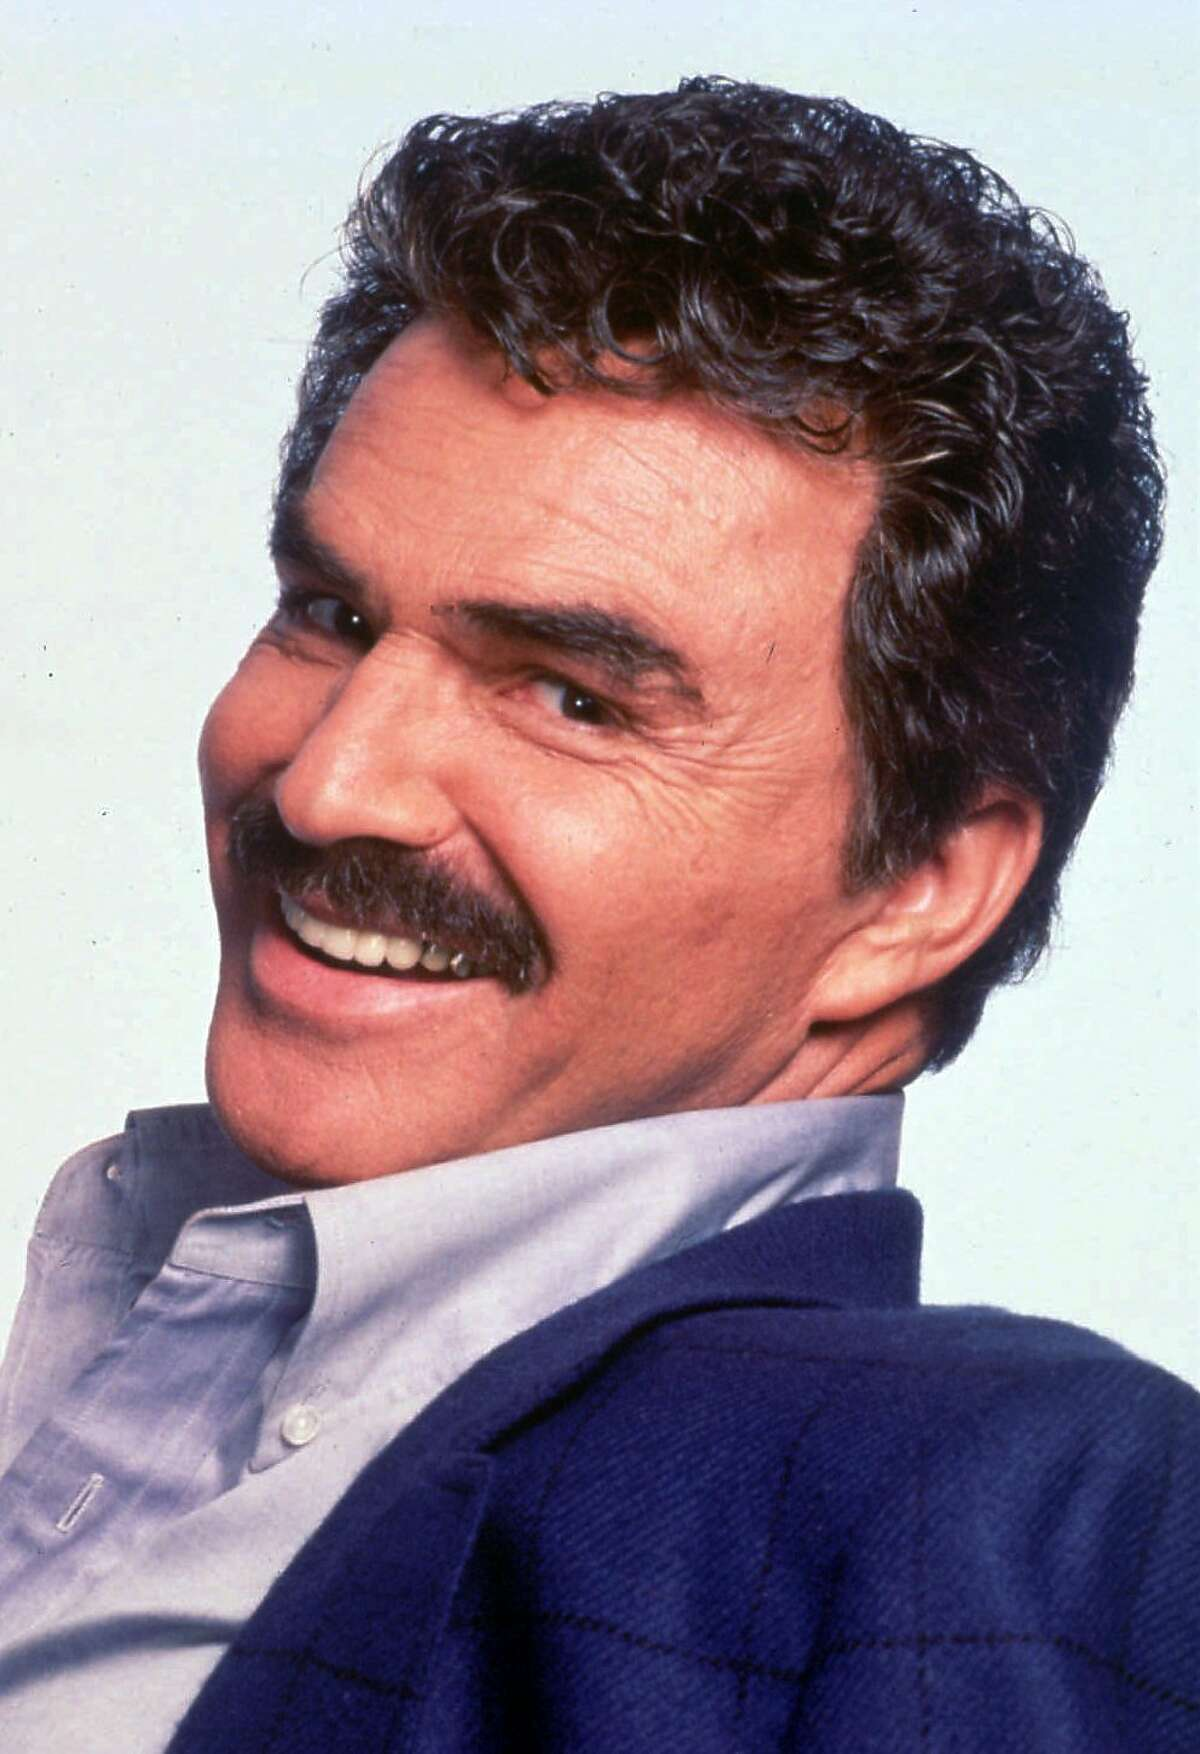 FILE--Actor Burt Reynolds took up the pen to answer a Los Angeles newspaper column on his personal turmoil and charges that he has lost his sense of humor and grace. Phil Rosenthal wrote in his Daily News column that Reynolds' ``rage is no longer filtered through the humor that once enabled his digs to tickle as they needled. His anger is raw, unwashed and ugly now, and not even his uneasy laugh afterward disguises it.'' (AP Photo/file) ALSO RAN: 11/15/97,